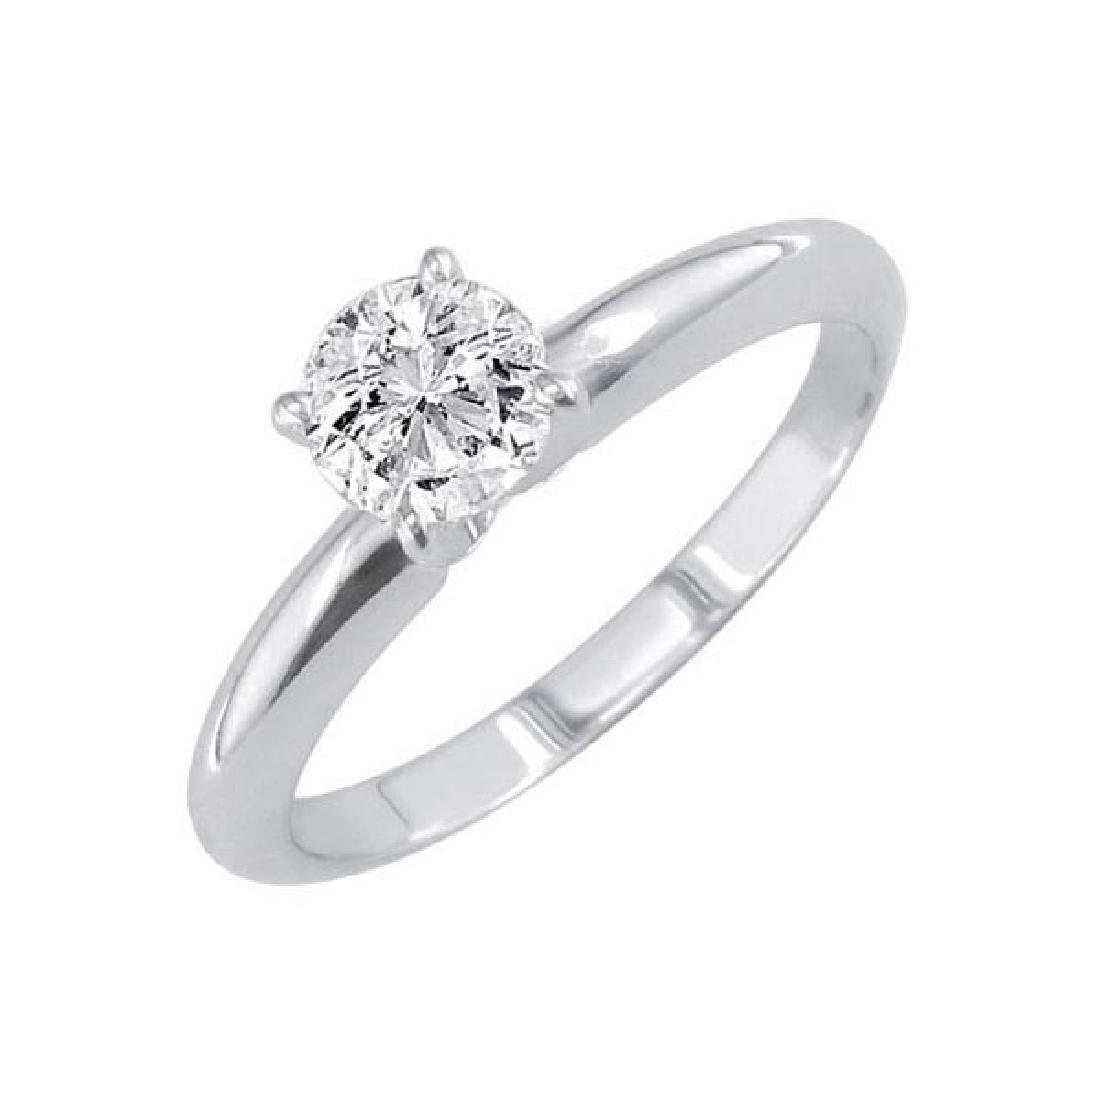 Certified 1.28 CTW Round Diamond Solitaire 14k Ring E/I